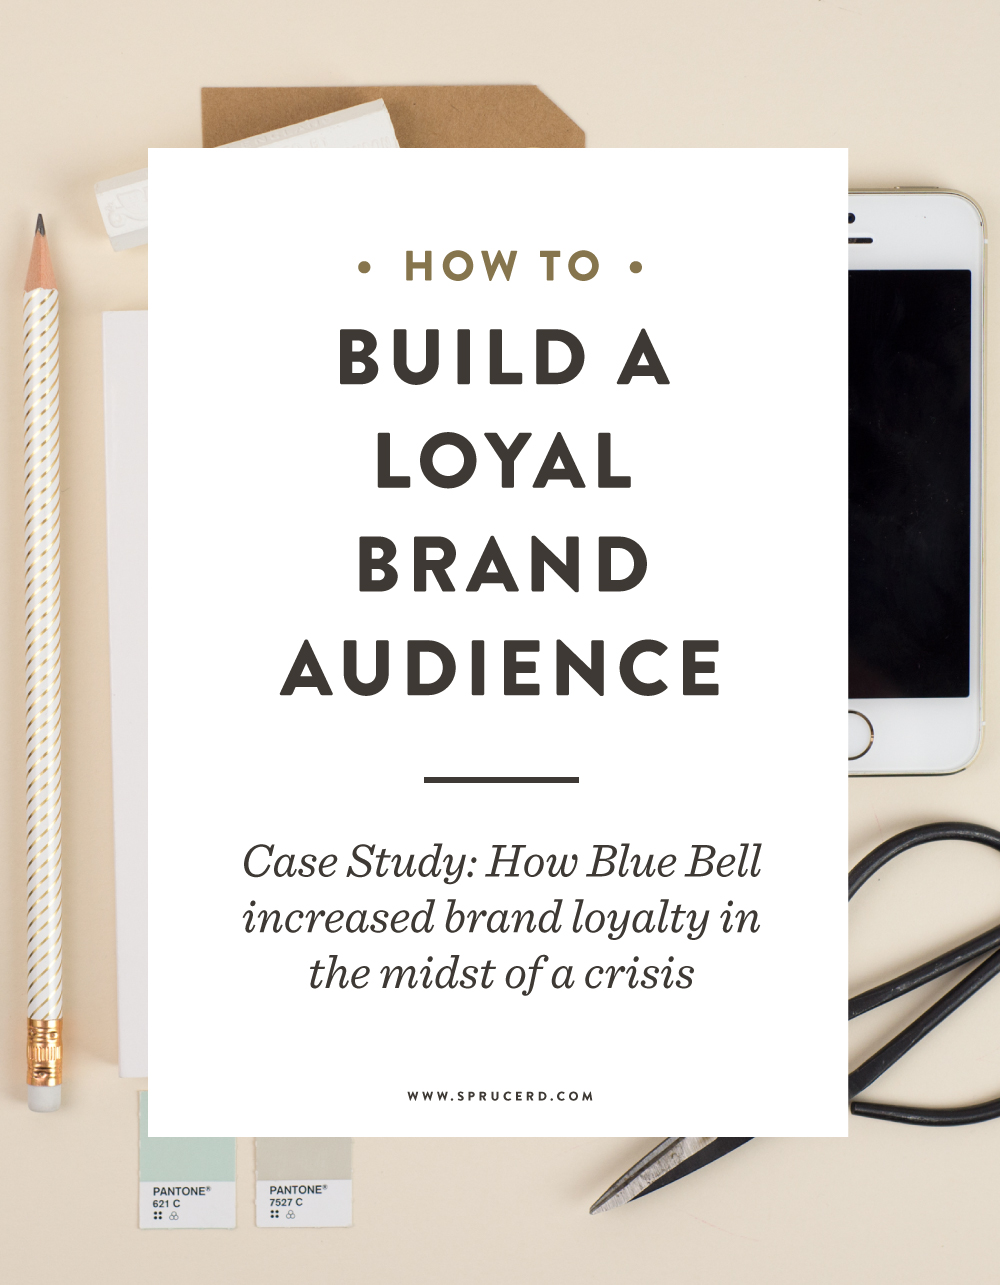 How to build a loyal brand audience (Case Study: How Blue Bell increased brand loyalty in the midst of a crisis)   How can you create loyal brand ambassadors? We will walk through a case study of how Blue Bell survived a tough spot, and resulted in a more loyal audience than before. Take notes on how you can increase brand loyalty in your business/blog.